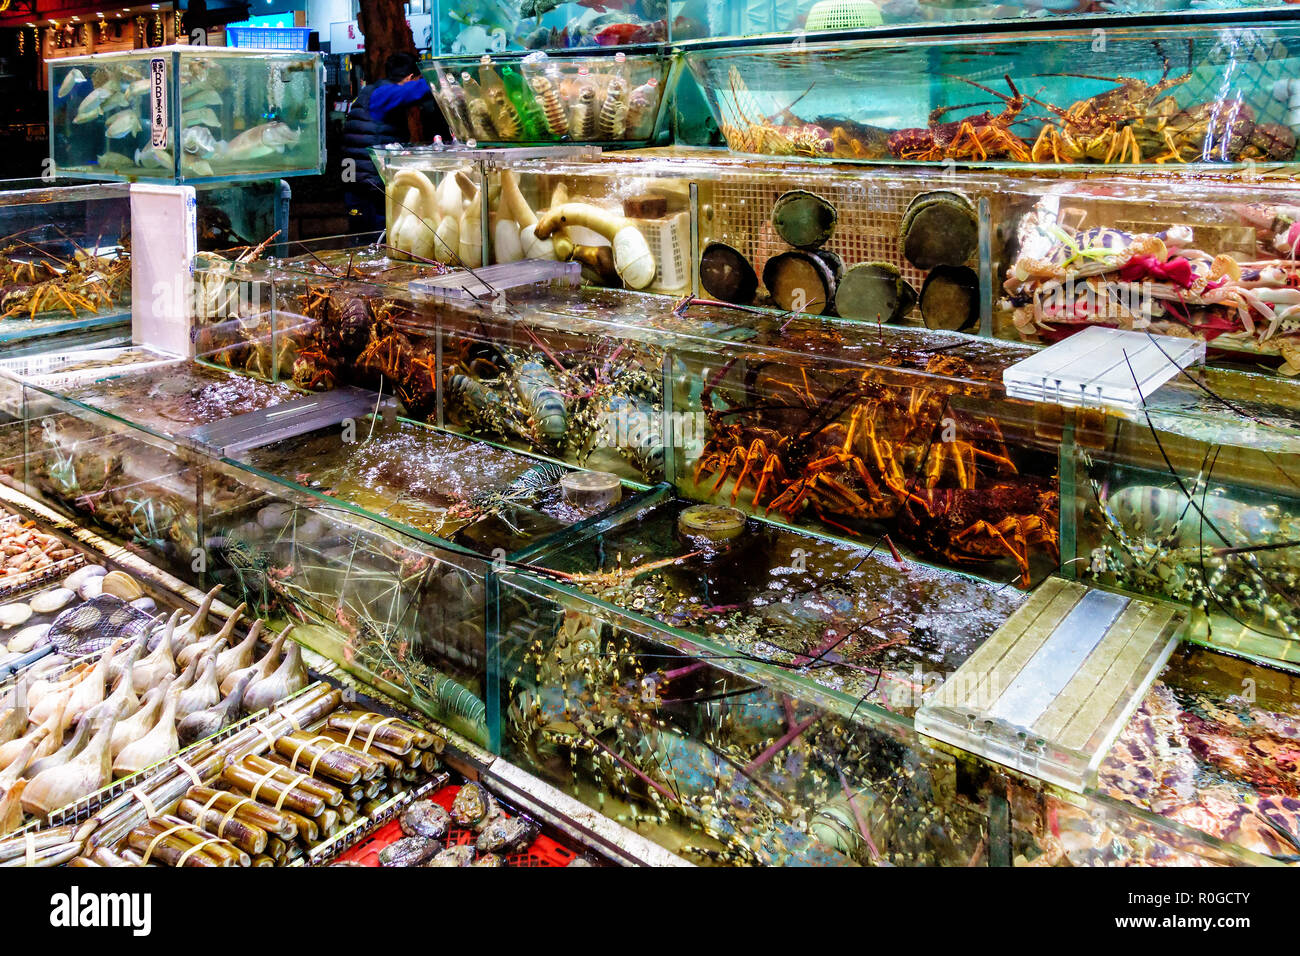 Fresh seafood market in Sai Kung, Hong Kong, abounds with various sea animal species to buy and cook - Stock Image